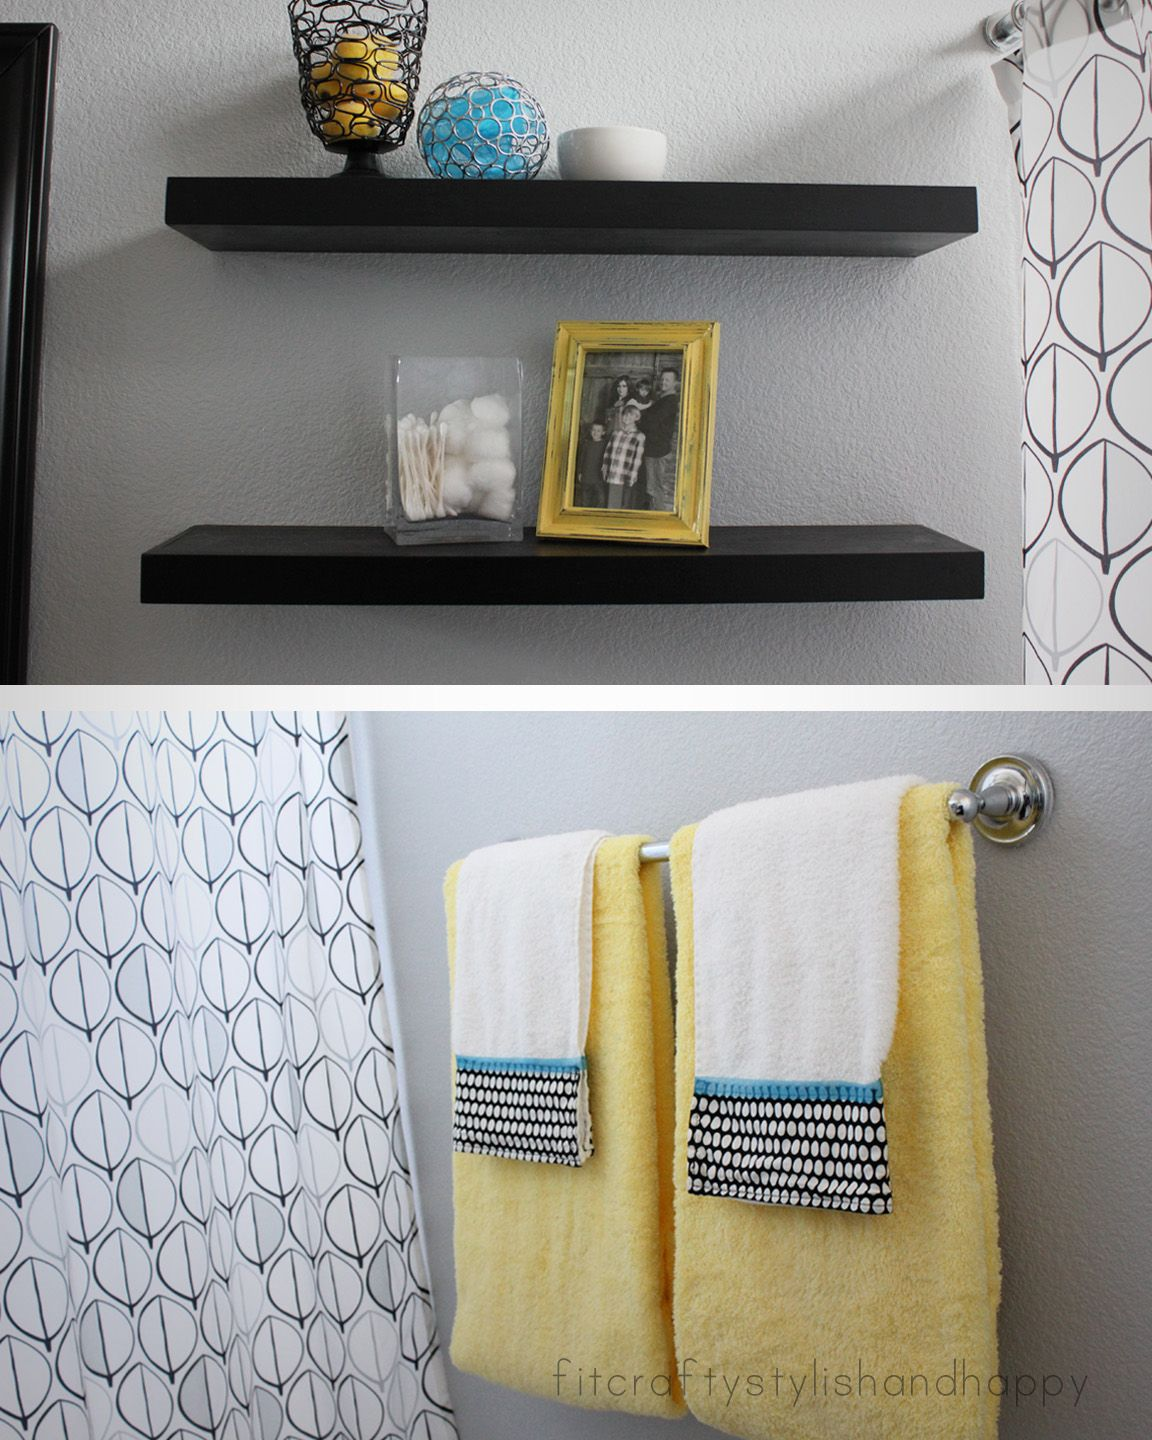 Blue And Yellow Bathroom Decor: Fit, Crafty, Stylish And Happy: Guest Bathroom Makeover